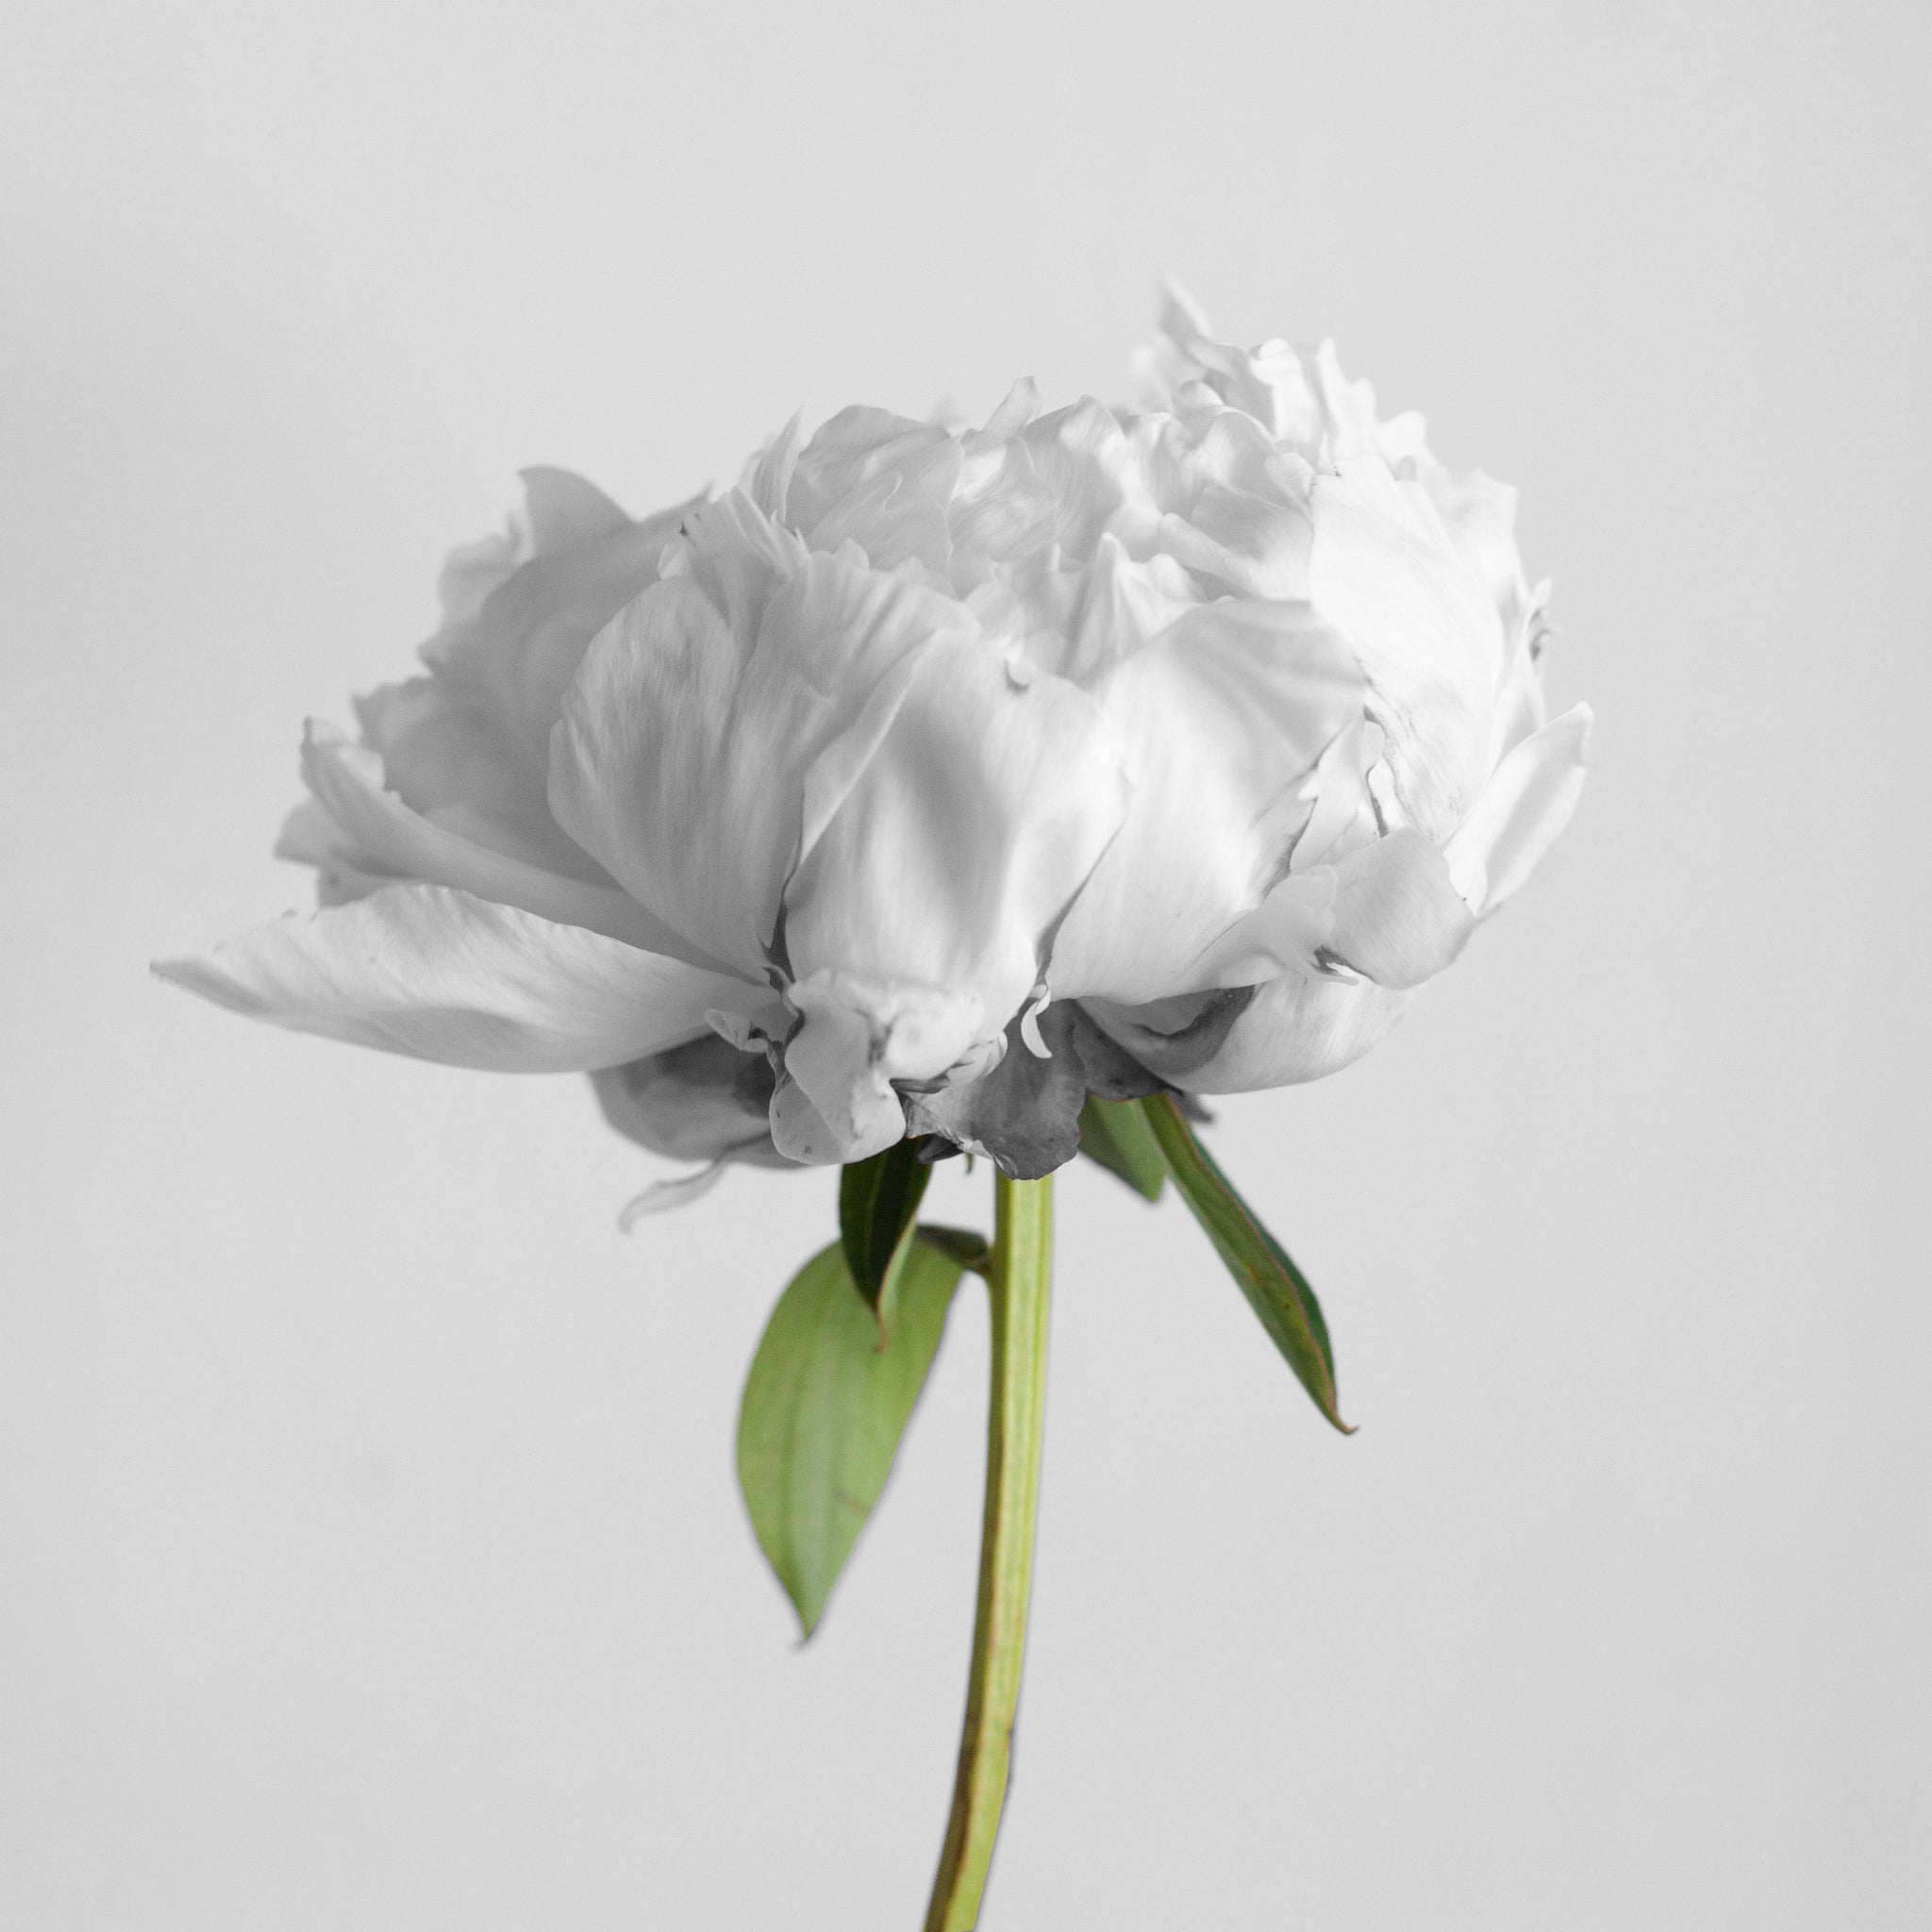 Organic bloom in twoodie style of monochrome background